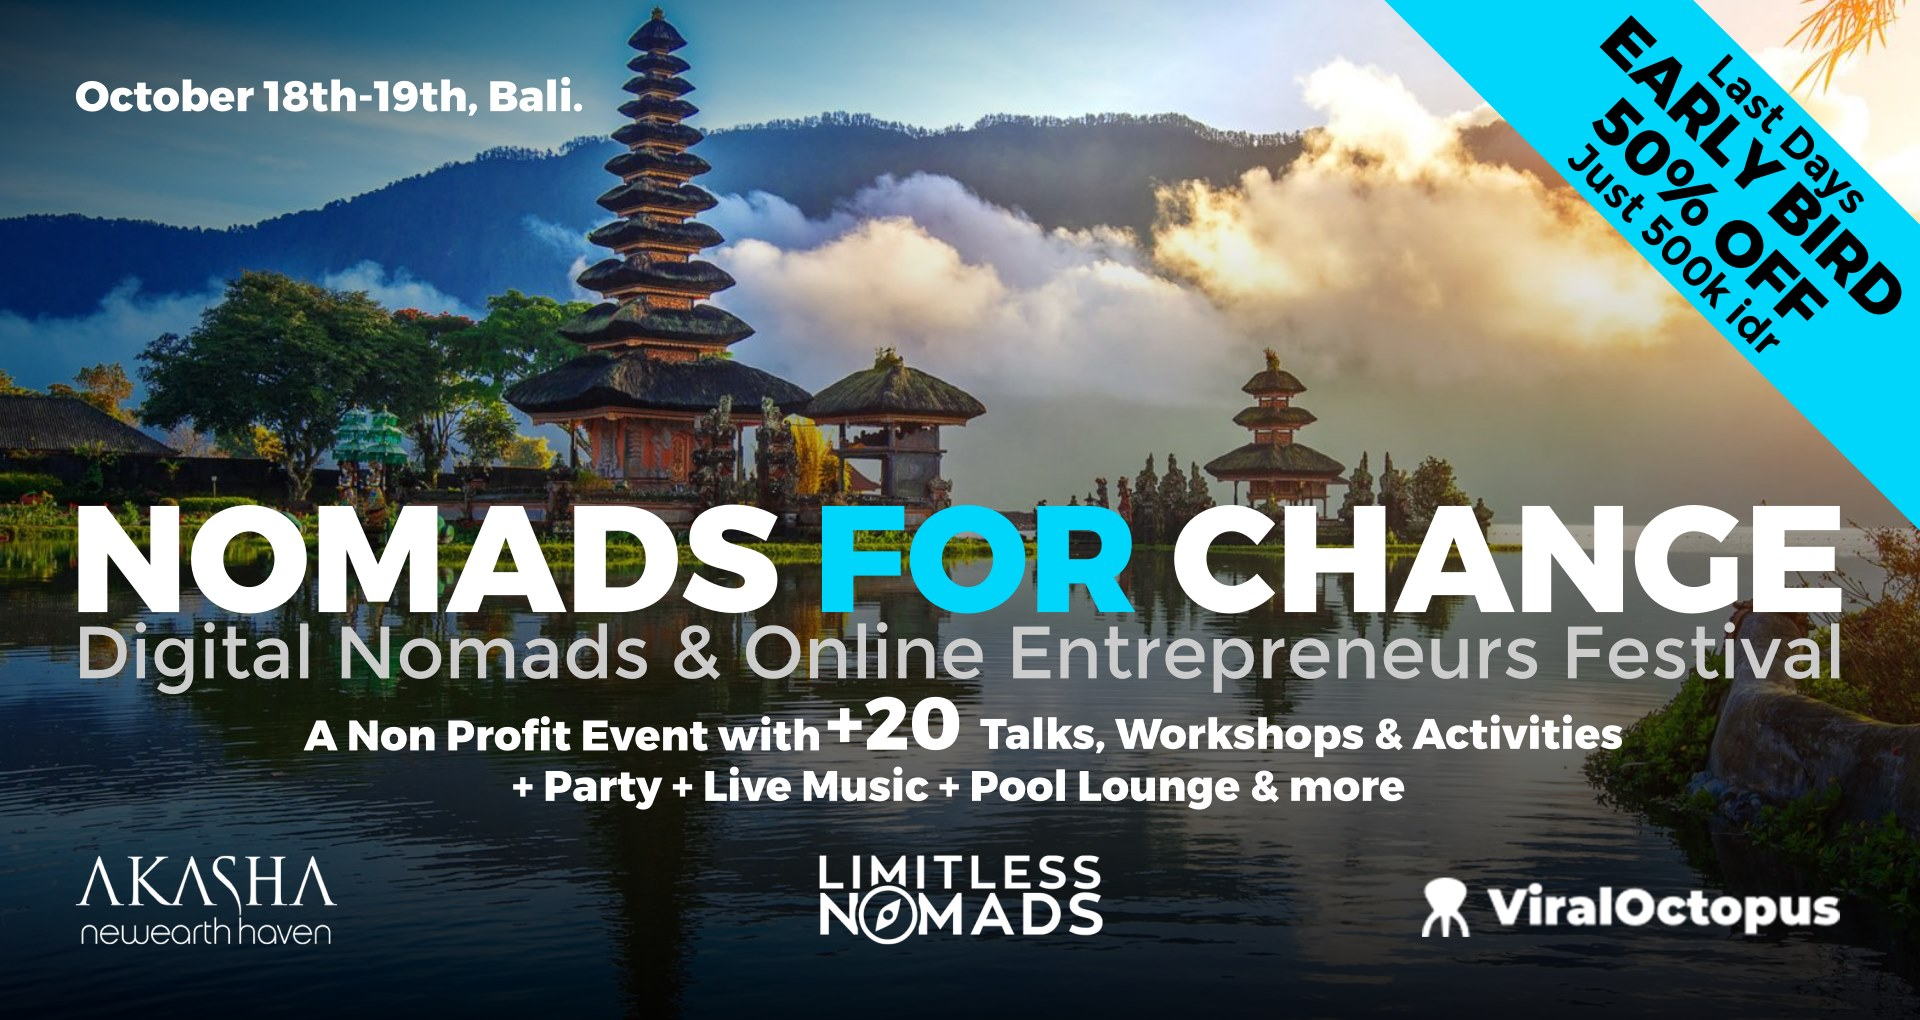 Nomads For Change.jpg